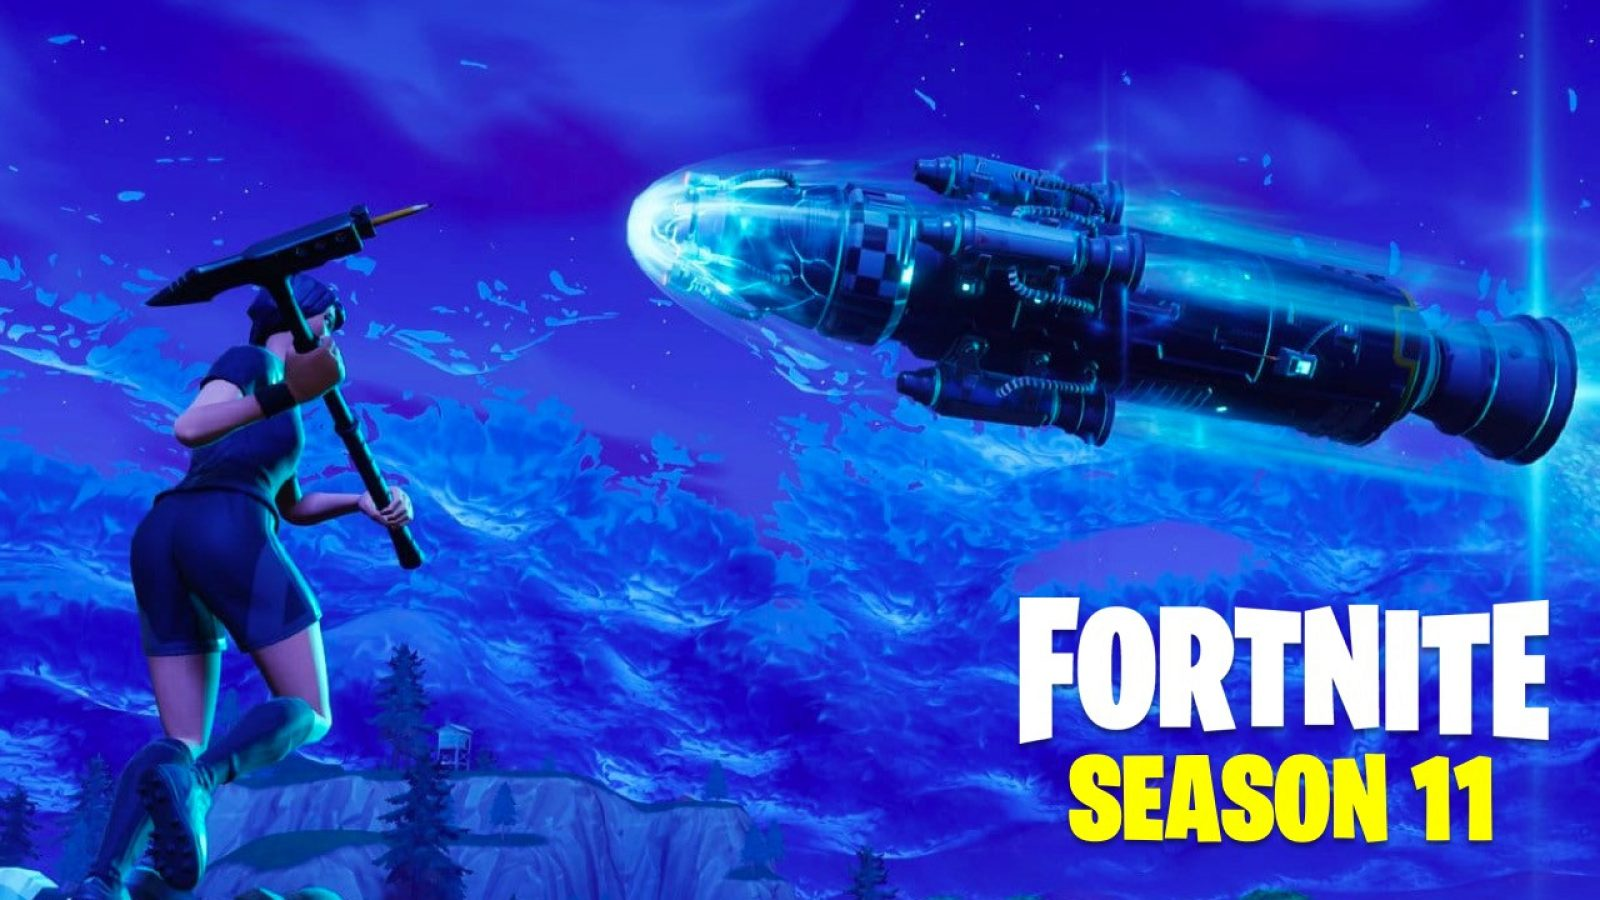 What about Fortnite Season 11